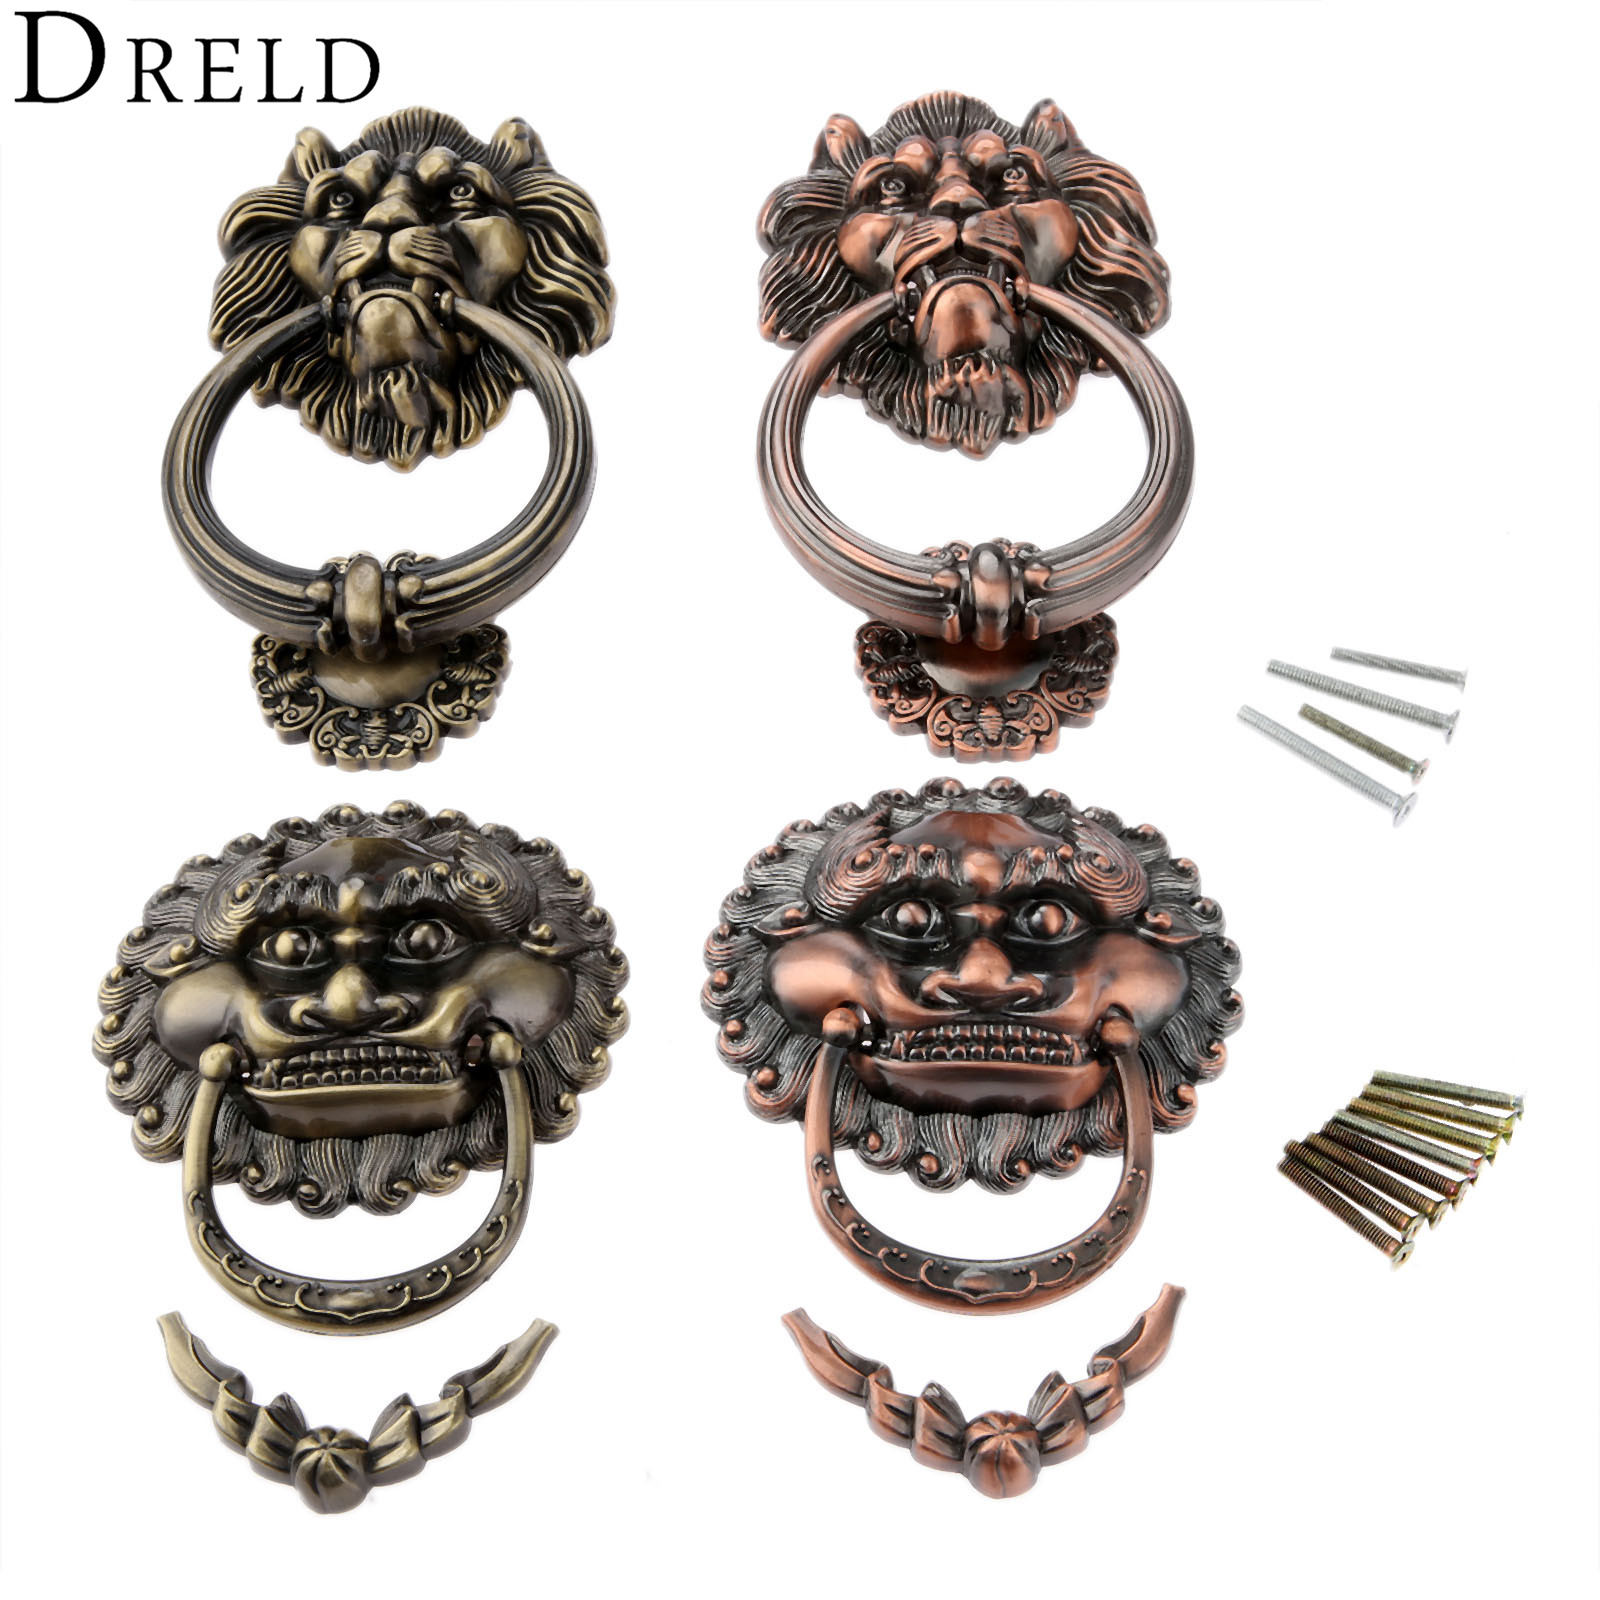 DRELD Antique Furniture Handles Vintage Lion Head Drawer Cabinet Knobs and Handles Doorknockers Rings Pulls Furniture HardwareDRELD Antique Furniture Handles Vintage Lion Head Drawer Cabinet Knobs and Handles Doorknockers Rings Pulls Furniture Hardware